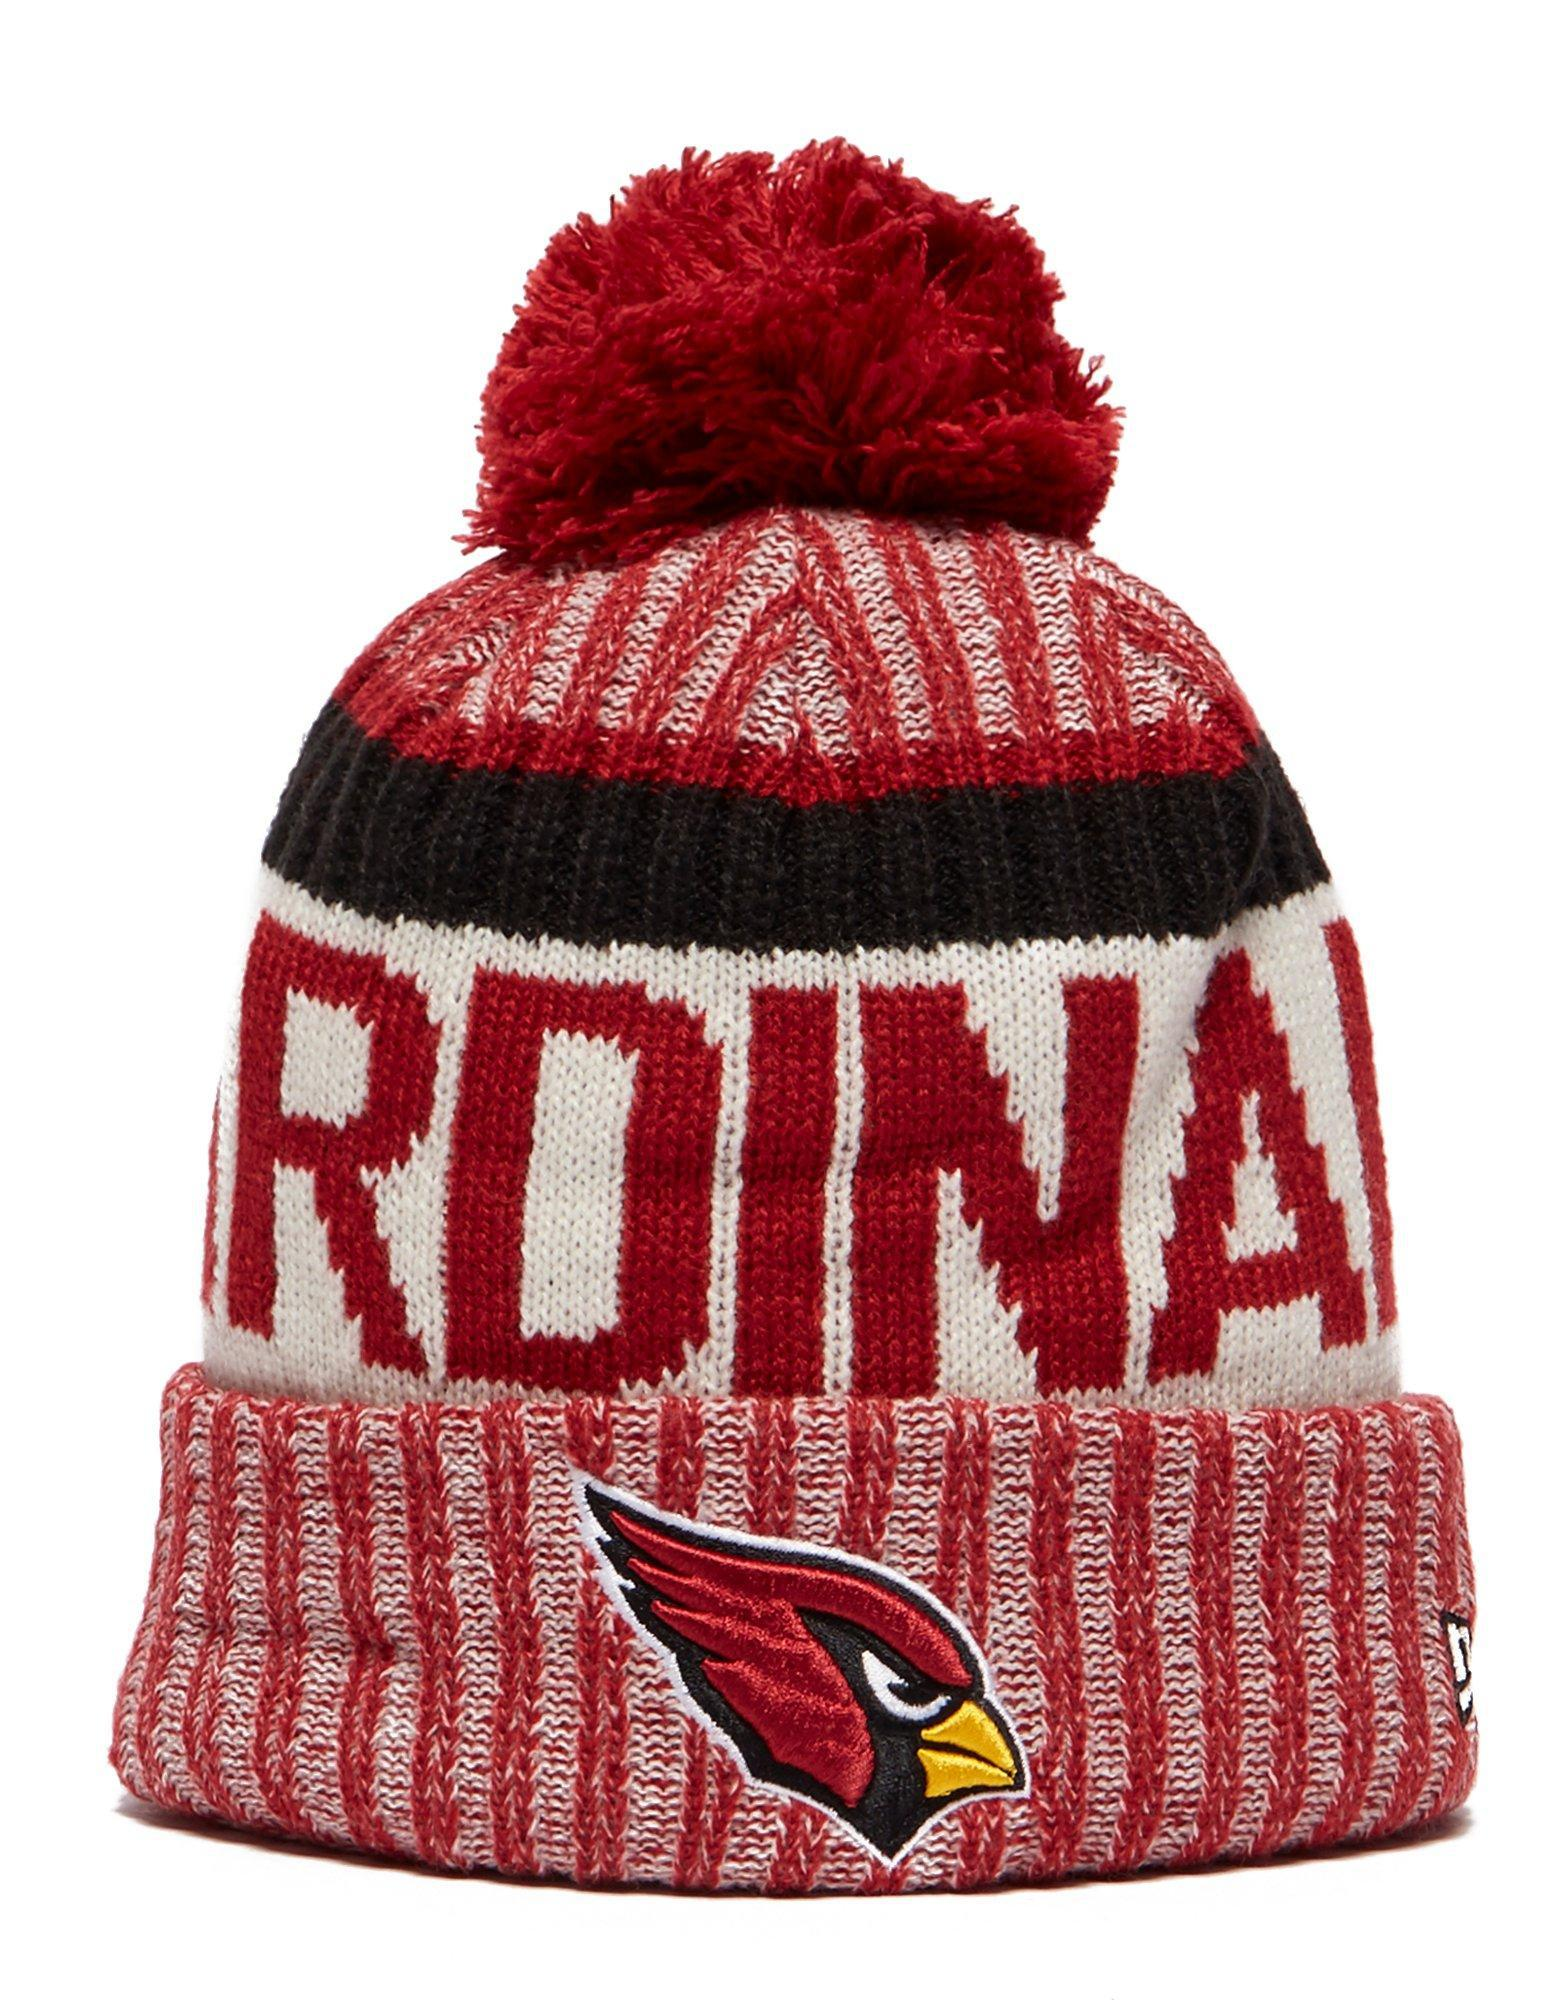 outlet store aaf19 417b1 ... official store lyst ktz arizona cardinals sideline knitted hat in red  4bd8a 4bd6f